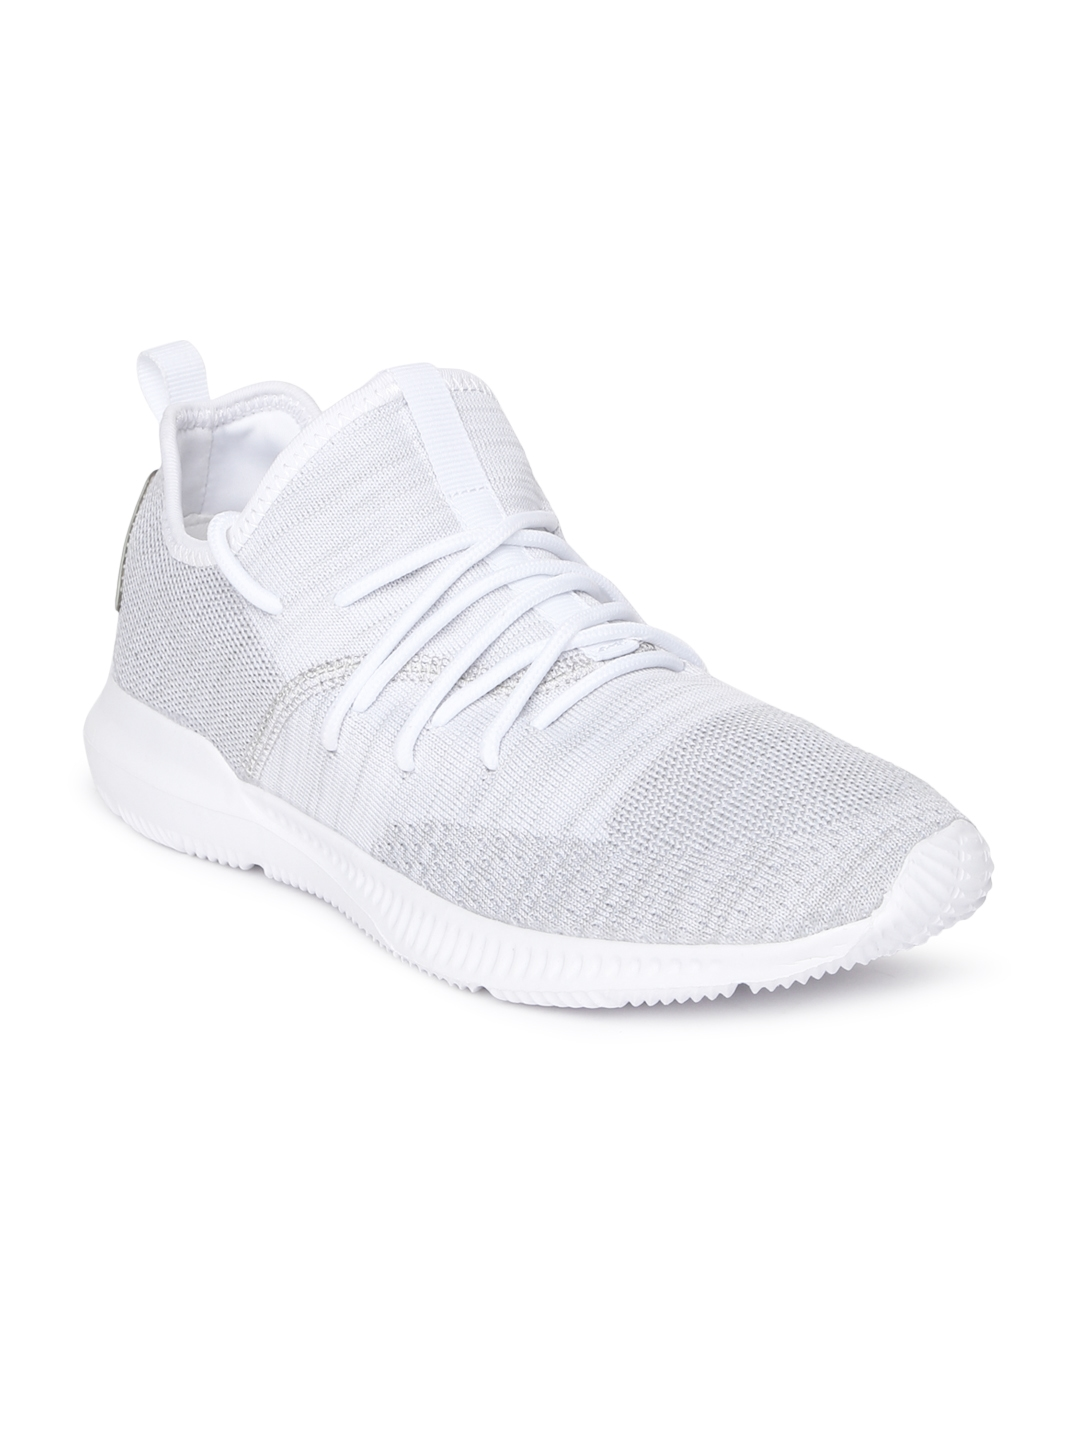 20985253e2ff Buy AMERICAN EAGLE OUTFITTERS Men Off White Sneakers - Casual Shoes ...